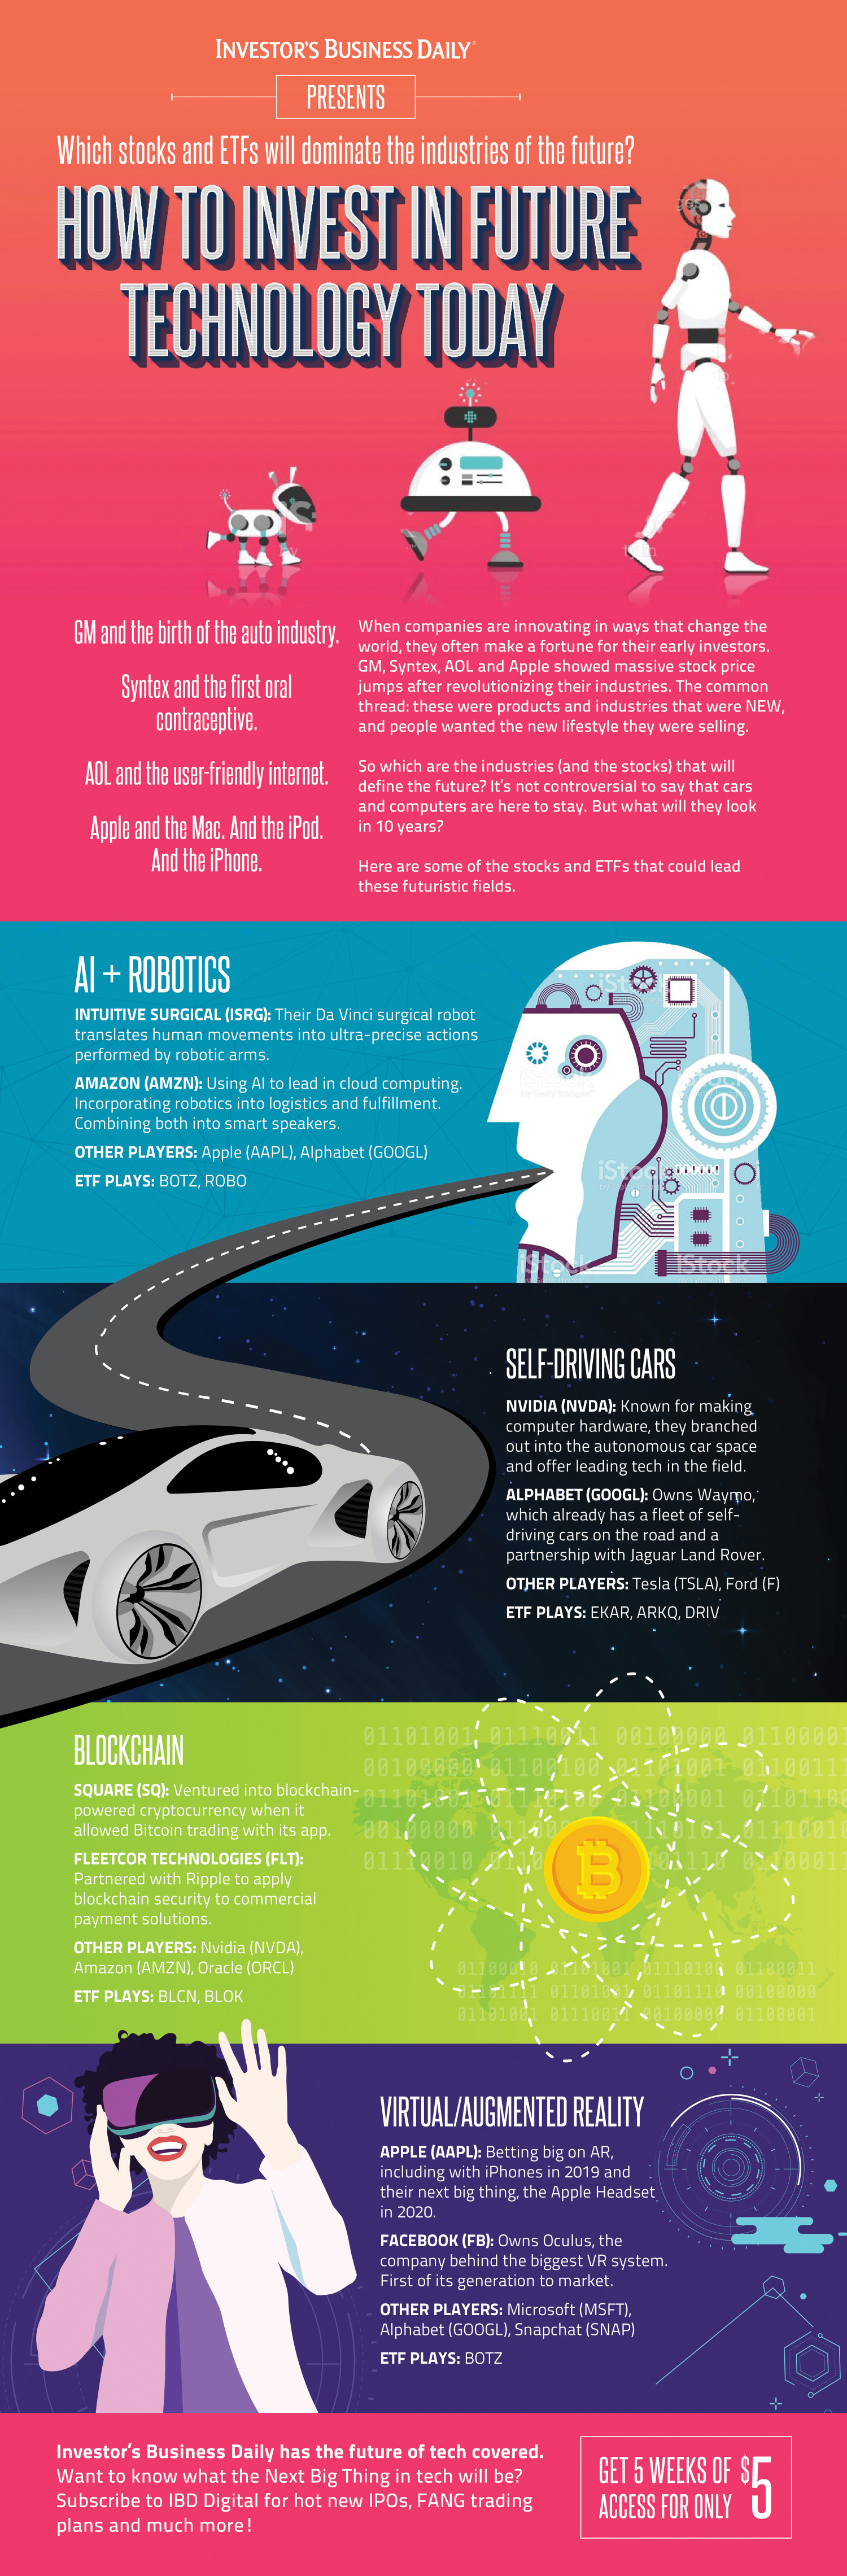 How to Invest in Future Technology Infographic